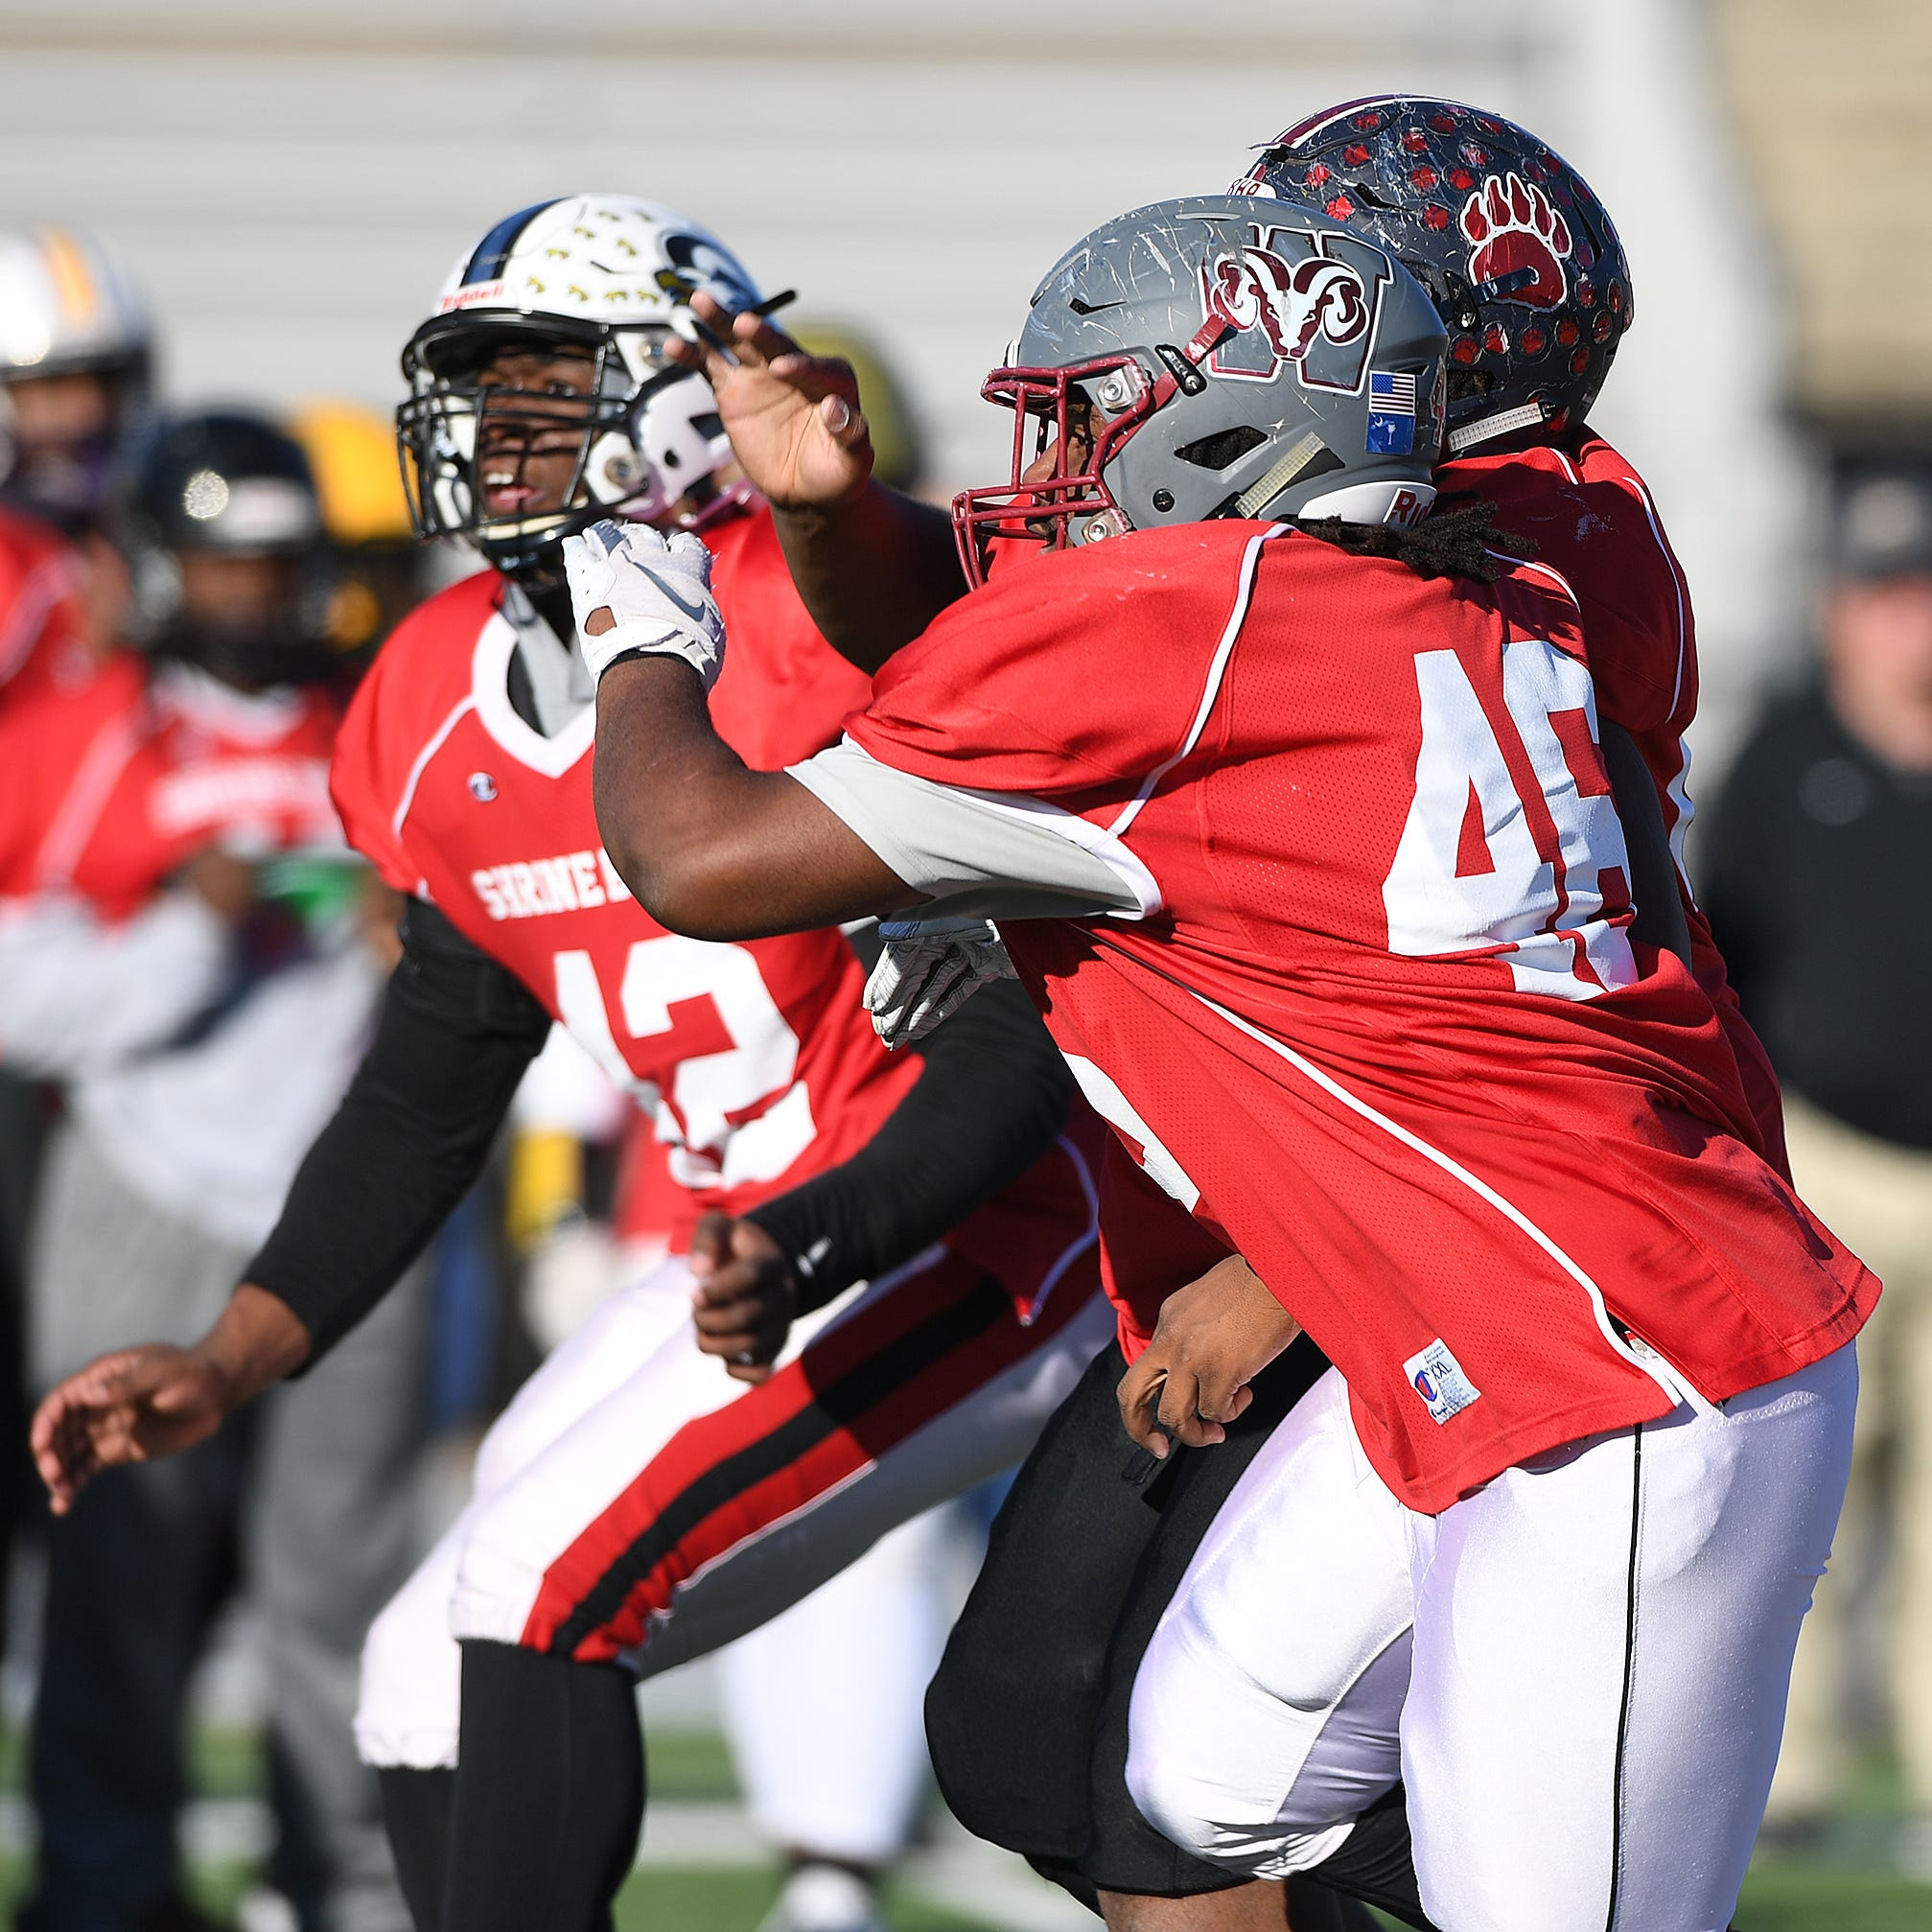 Shrine Bowl may help Westside's Devante Gambrell realize his college dream